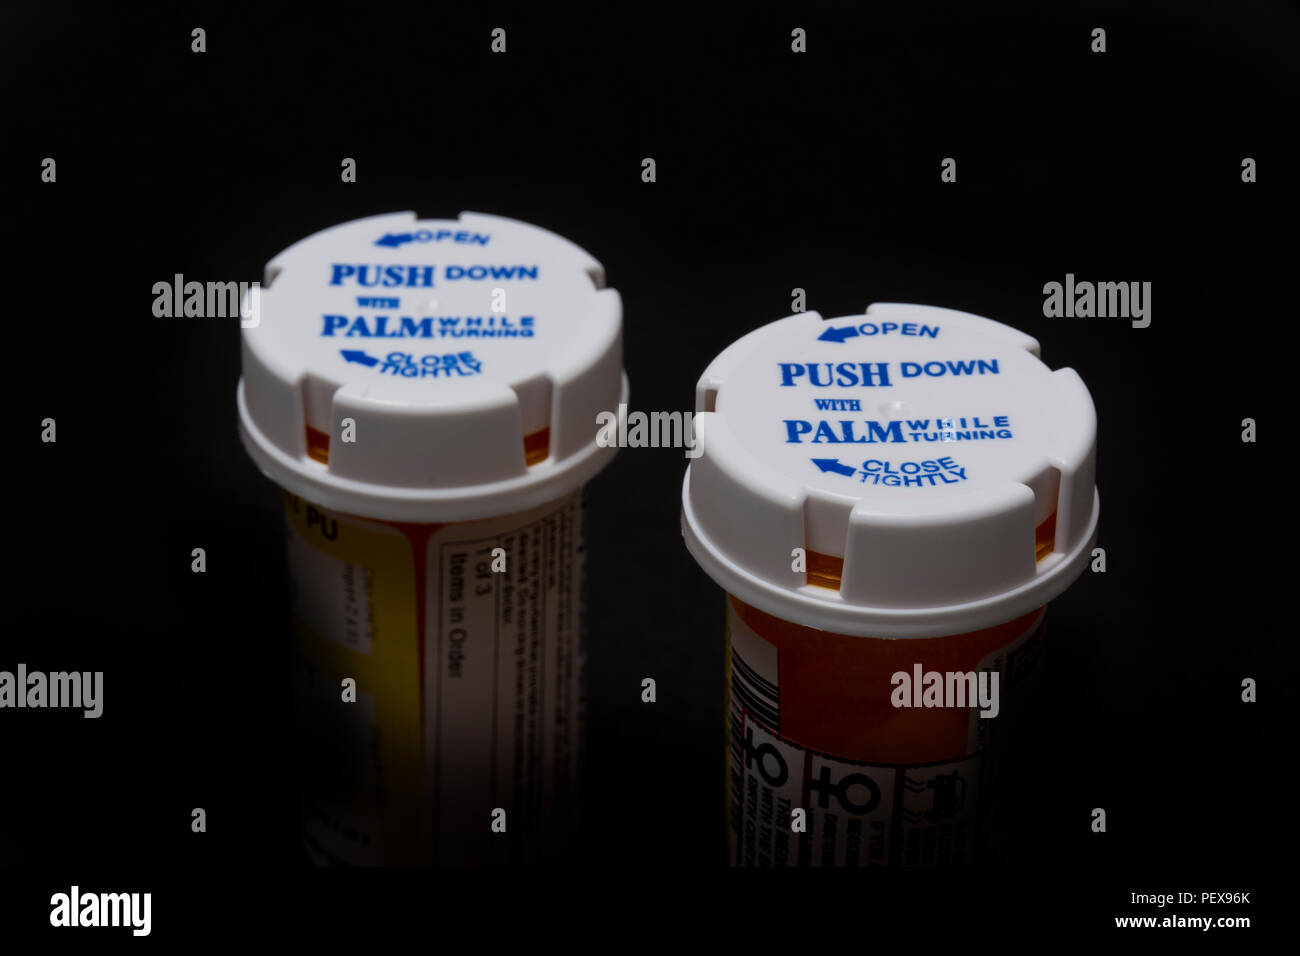 A pair of prescription bottles with child-proof caps. - Stock Image